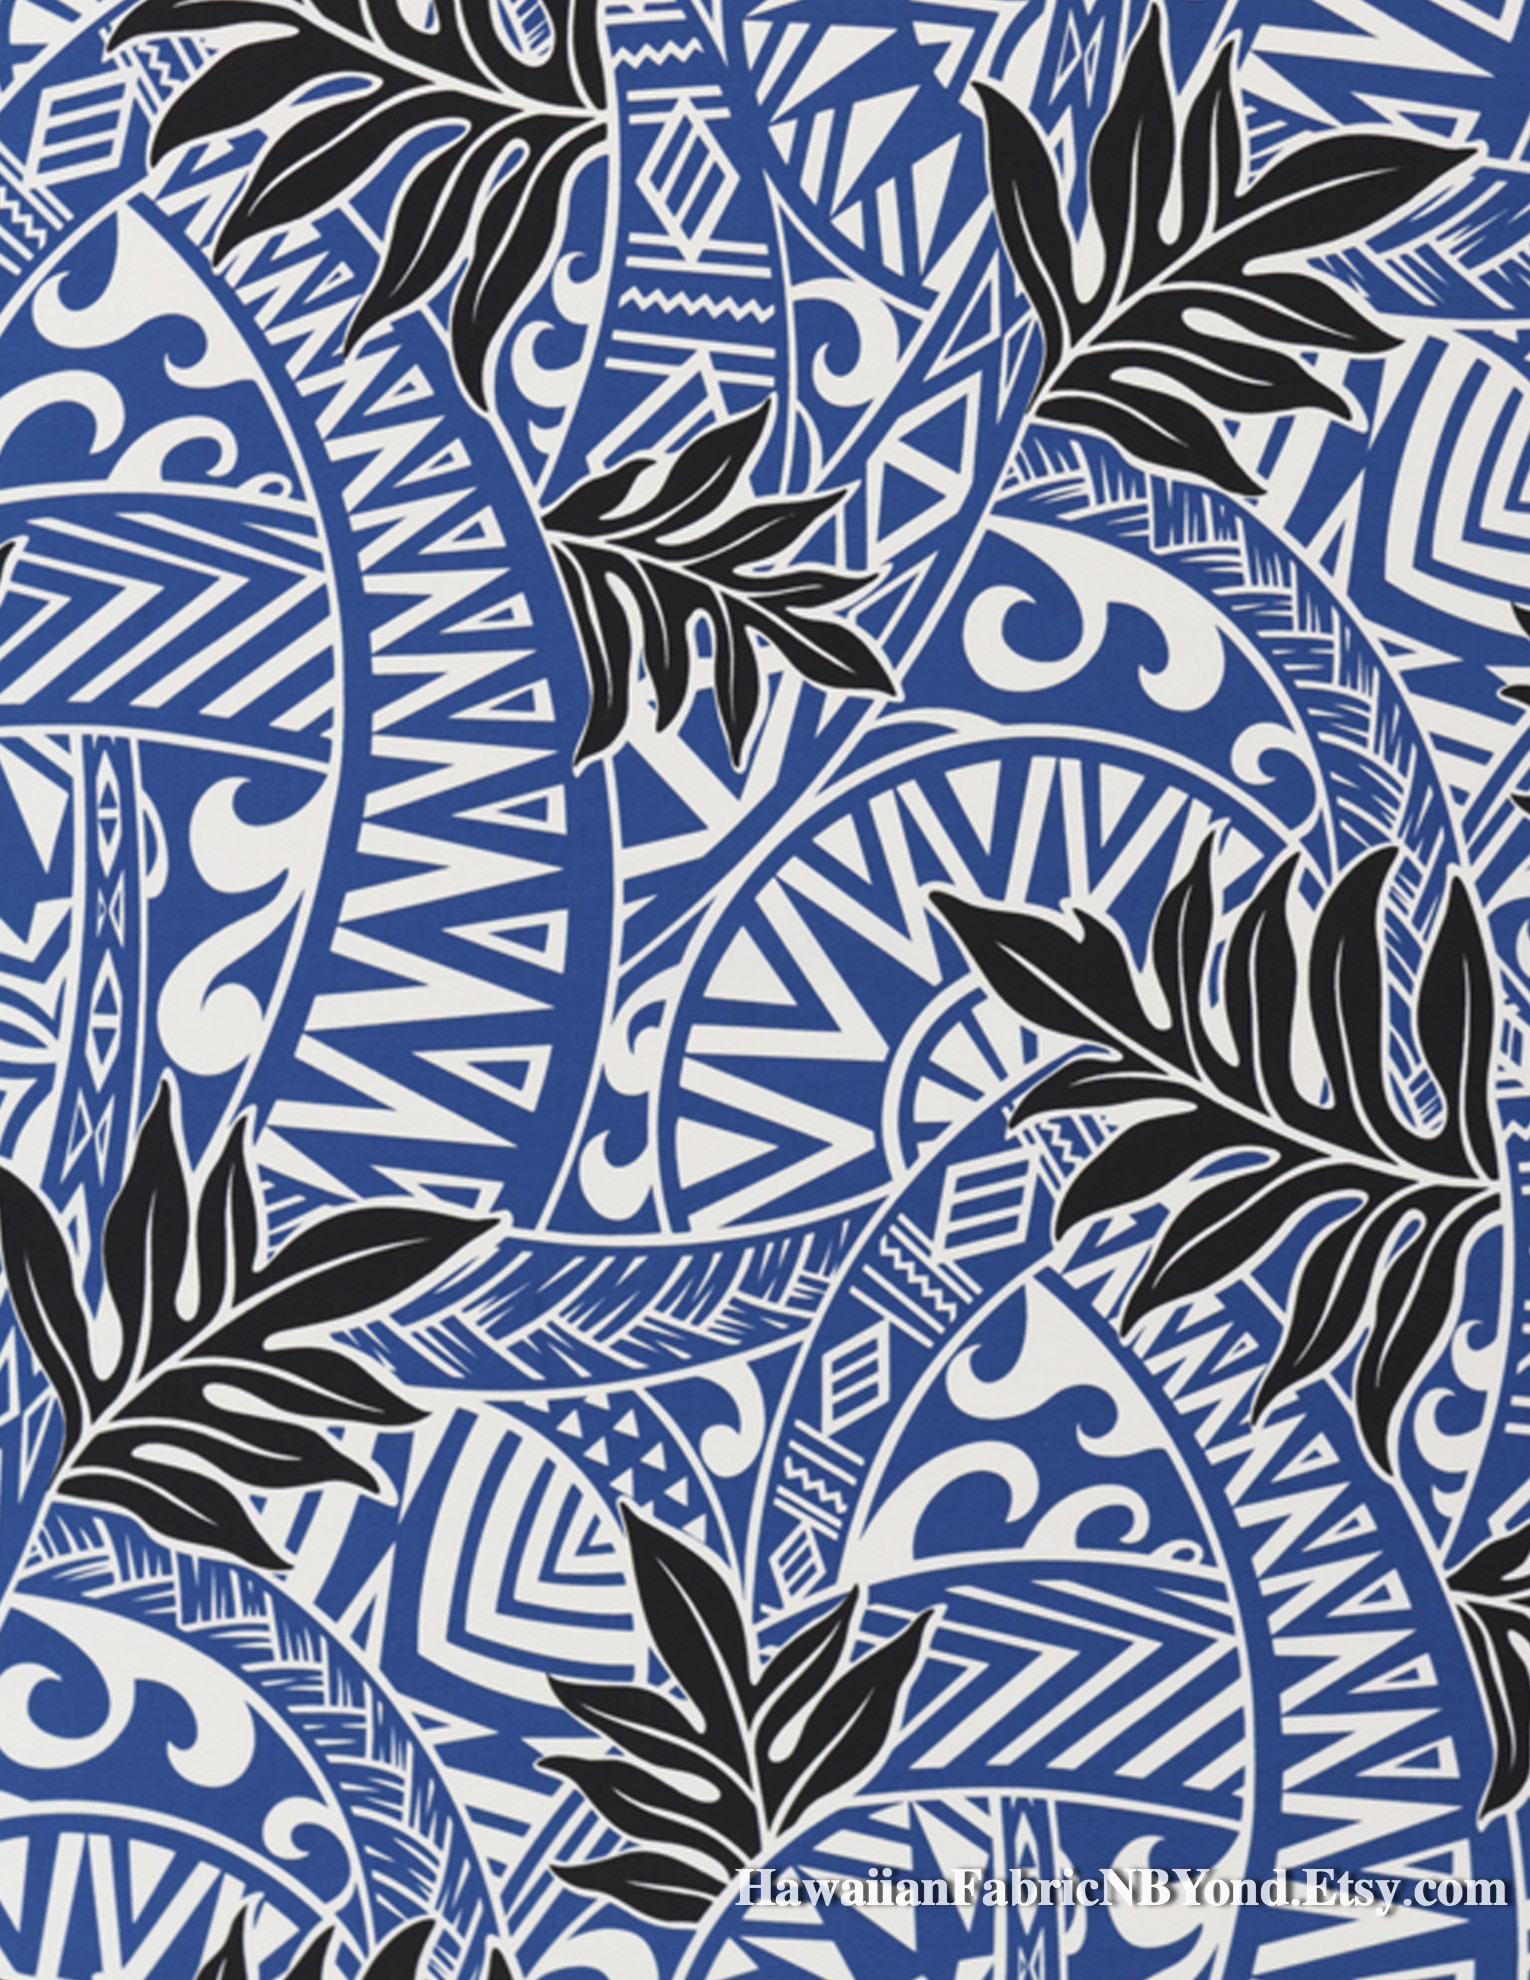 Res: 1530x1980,  Tribal fabric: Tapa patterns and tropical ferns. By  HawaiianFabricNBYond.Etsy.com